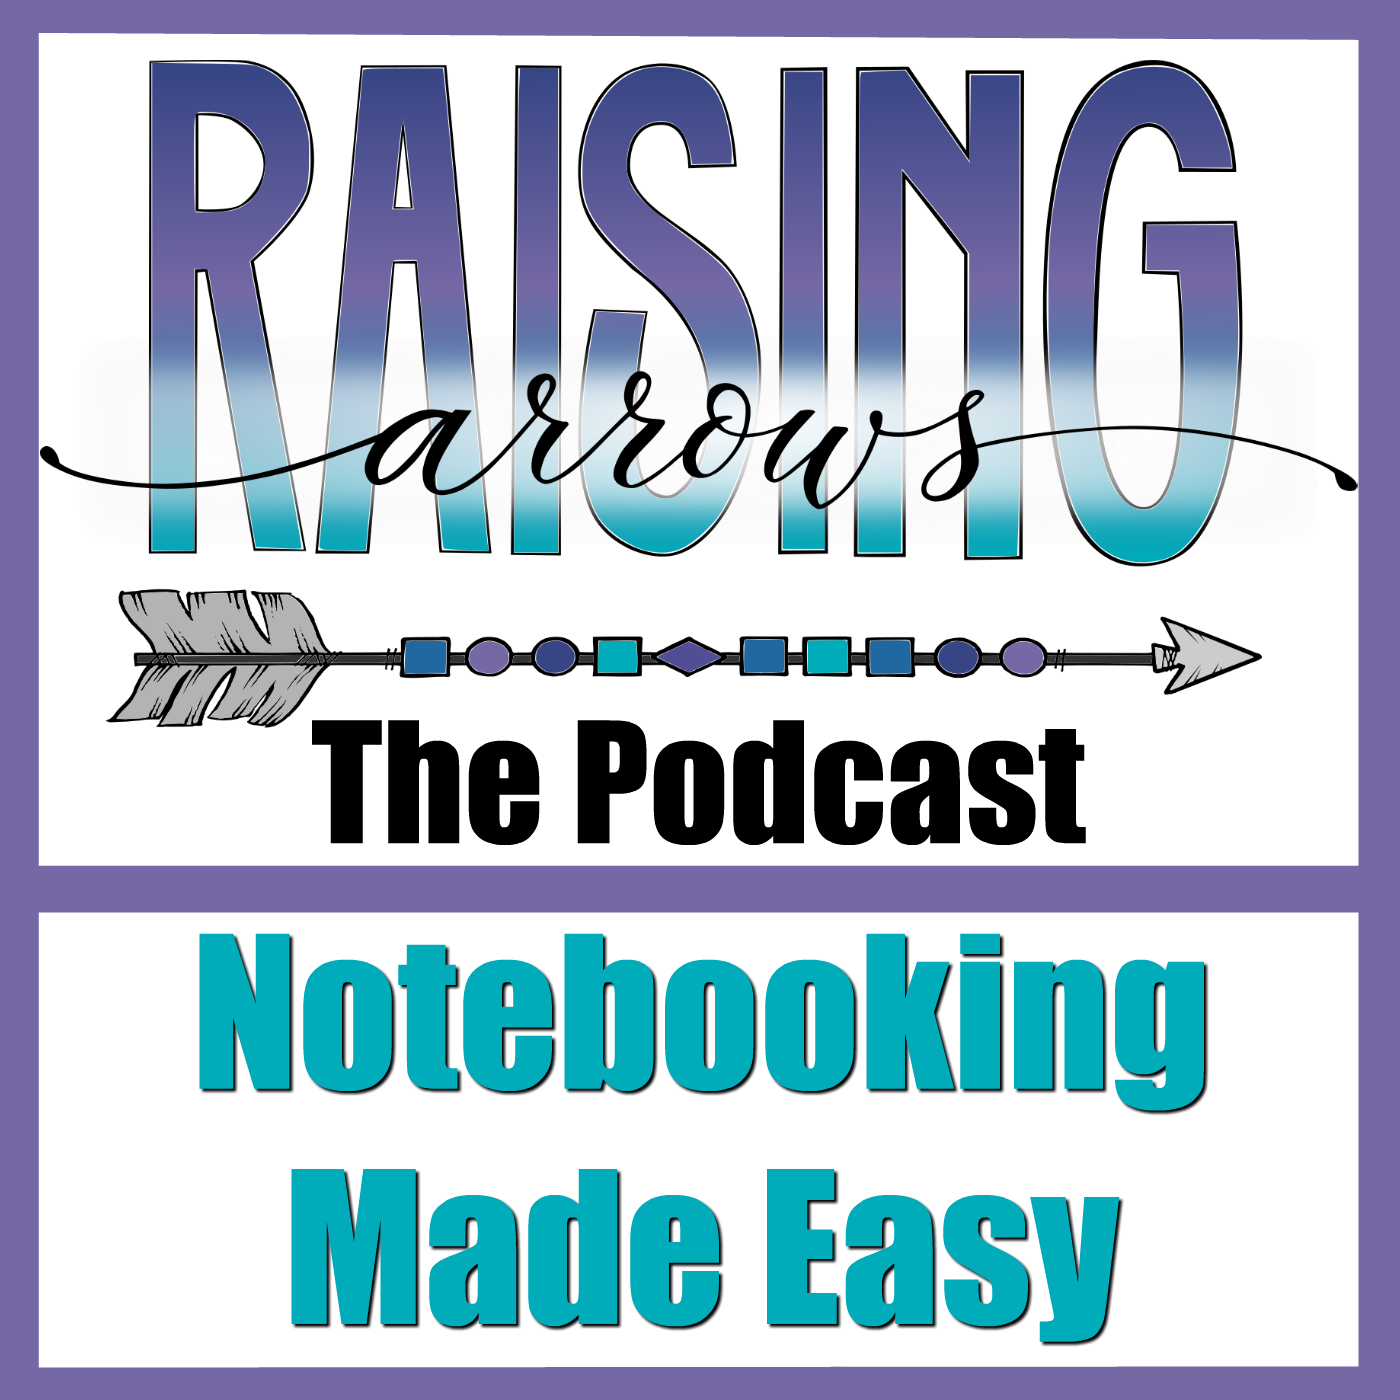 Learn how to make notebooking easy for your family!